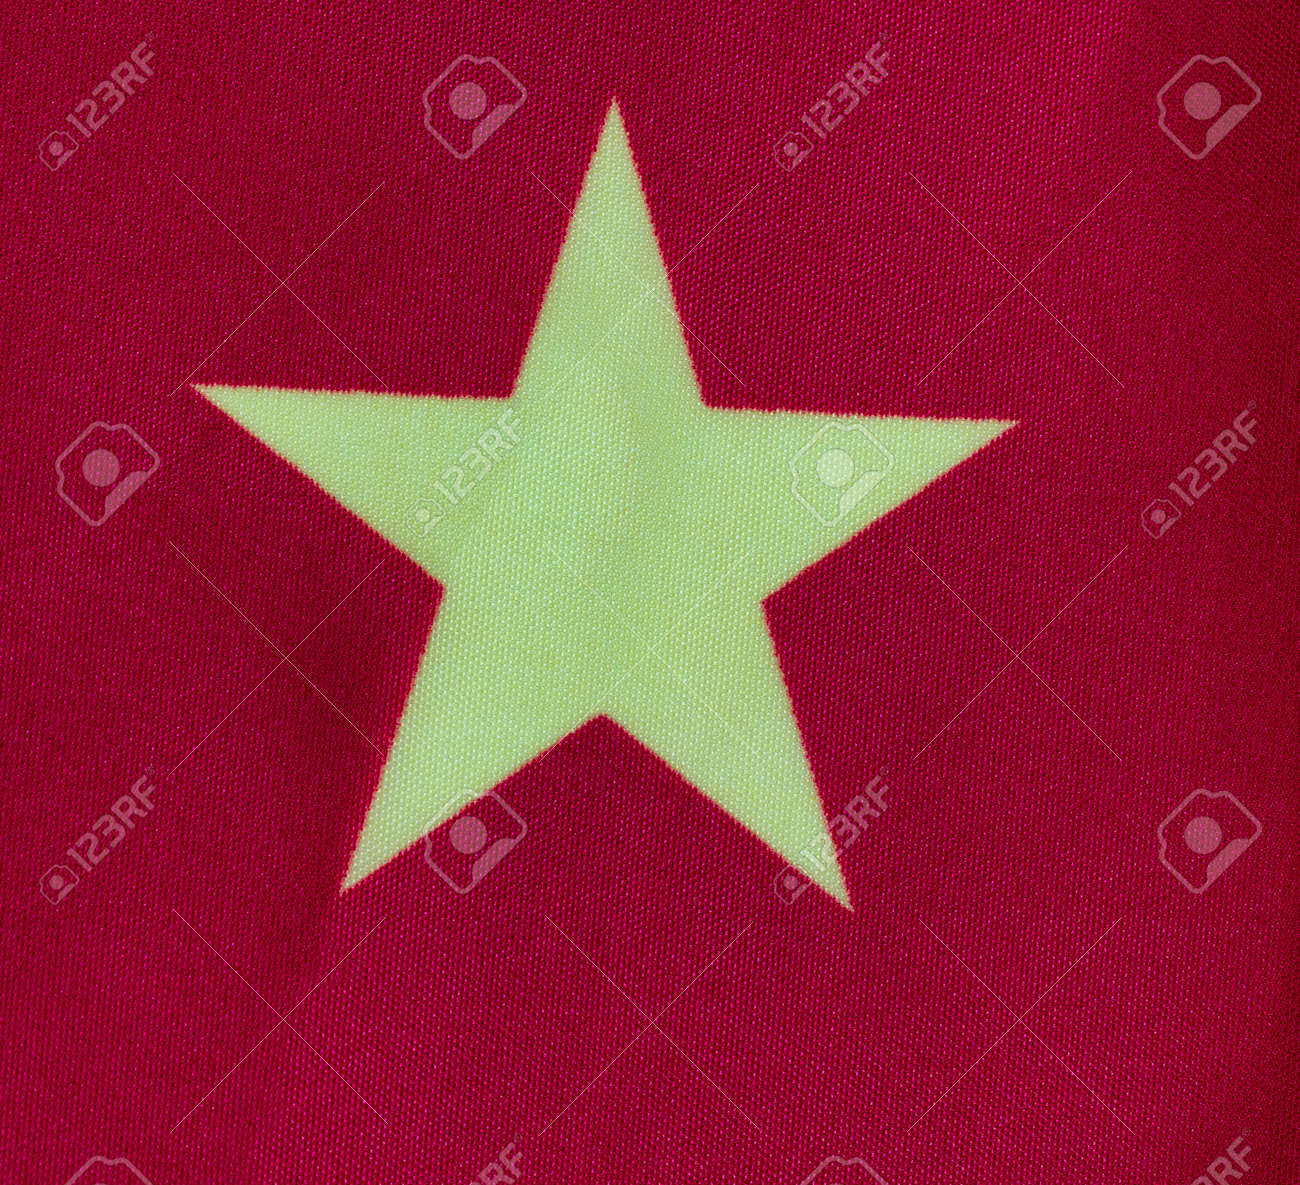 Single yellow star on red cloth background for national China symbol in close up format - 167189194